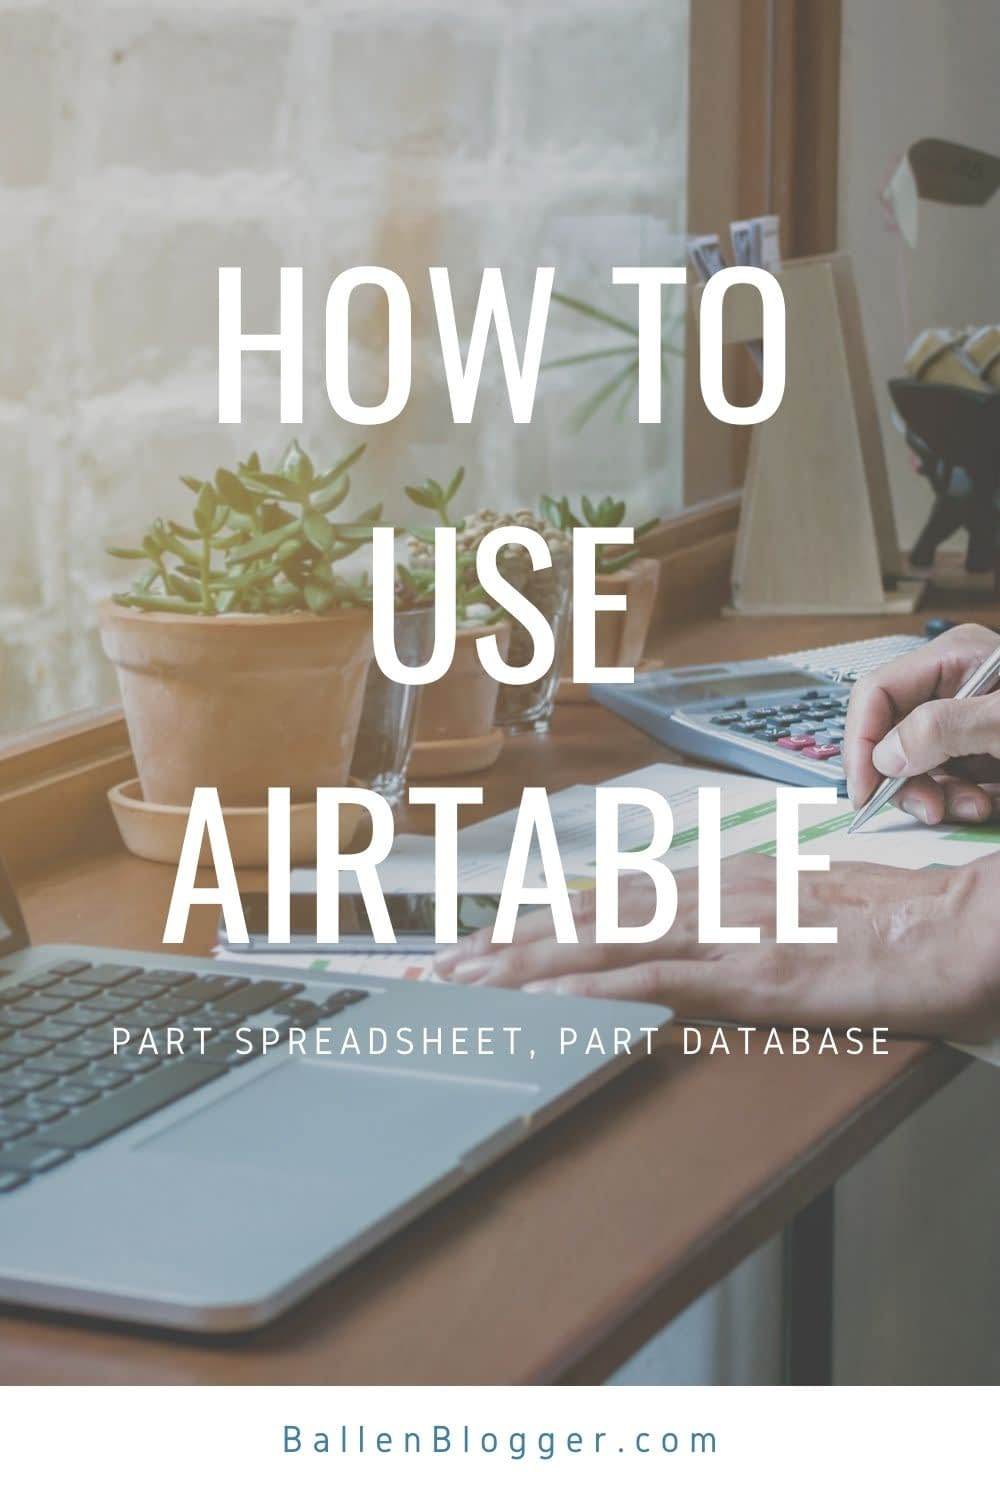 Airtable, founded in 2012, is a cloud collaboration tool. It combines many of the features of an extensive database with the format of a spreadsheet.